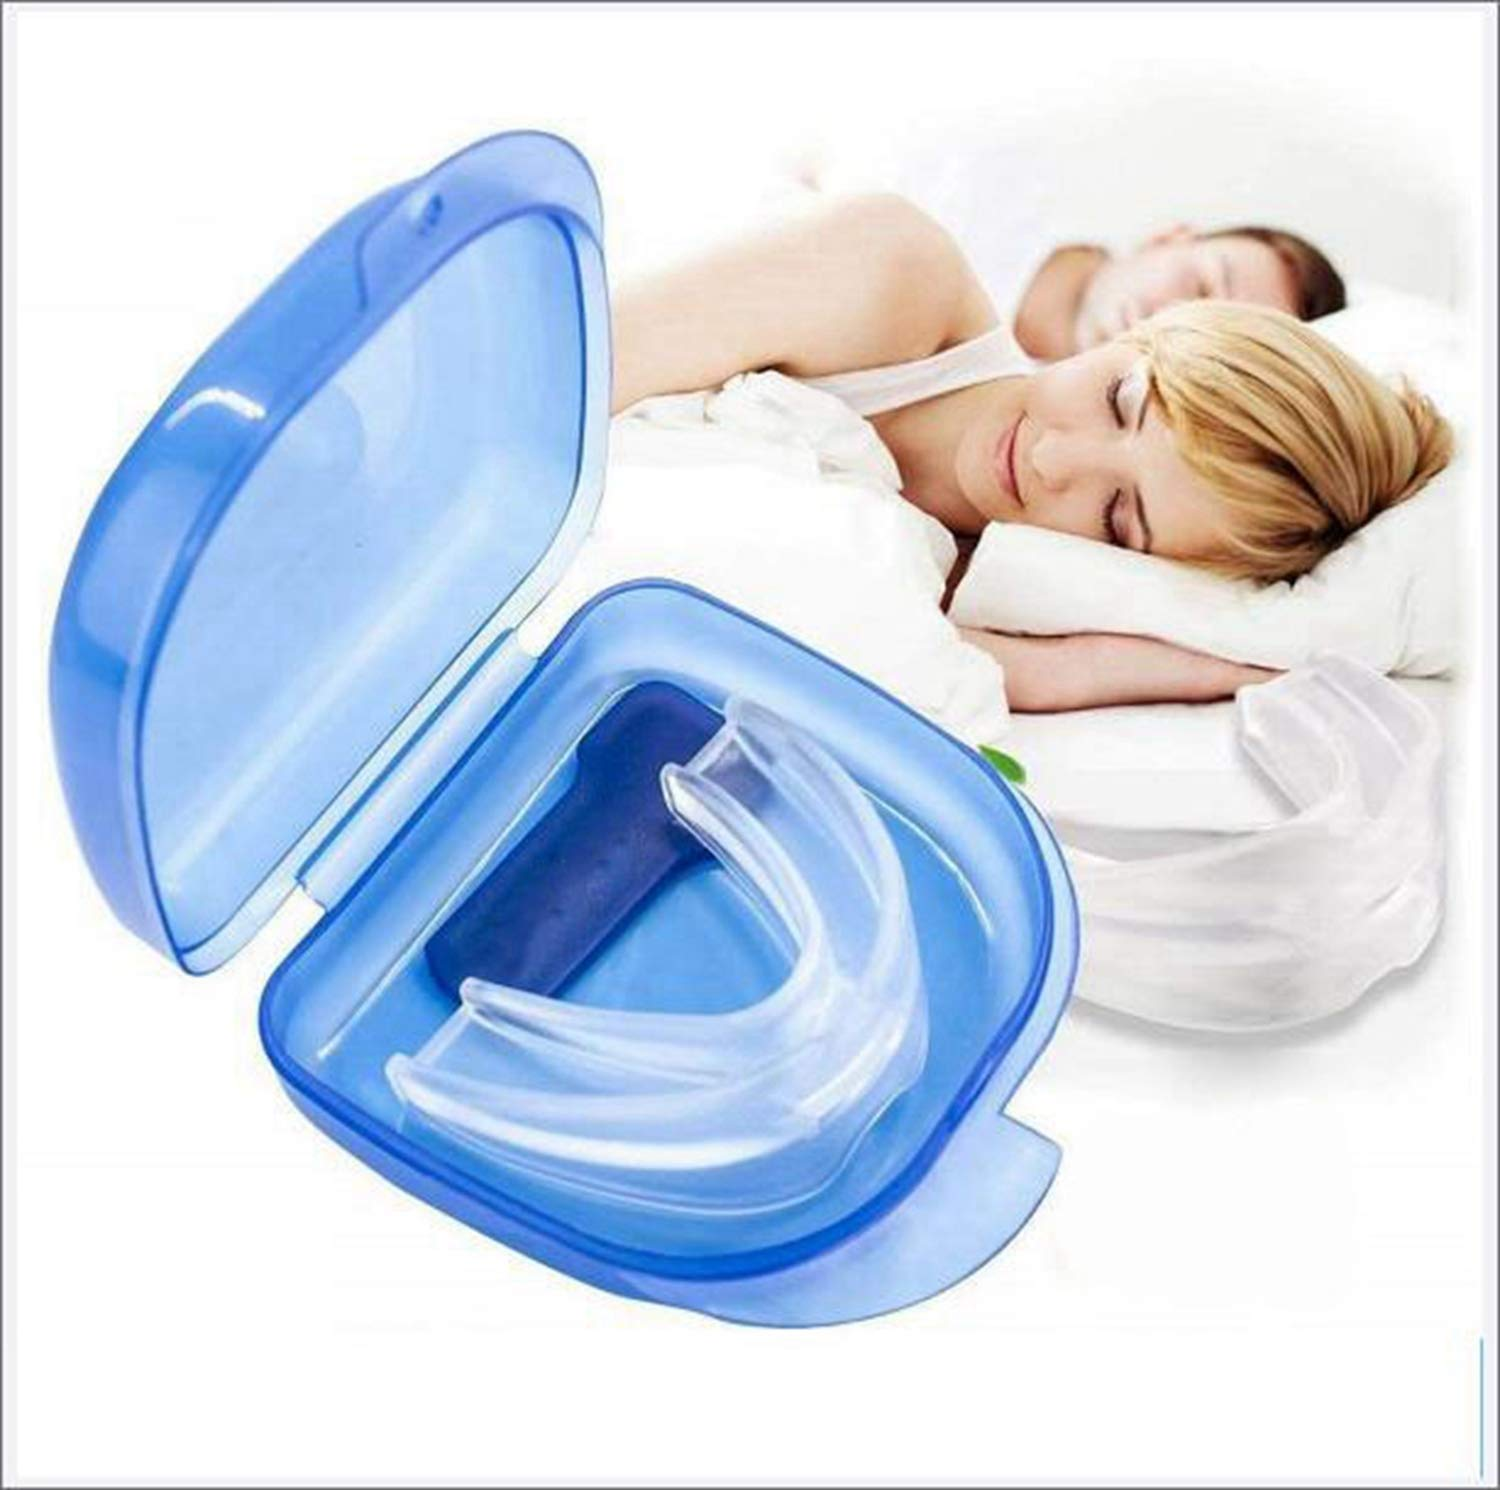 Maple_Leaf Anti-Snoring Device, Mask for Molars and Snoring, Snoring Aid Snoring Hemostatic Device and Breathing Air Purifier for Comfortable Sleep Snoring Solution